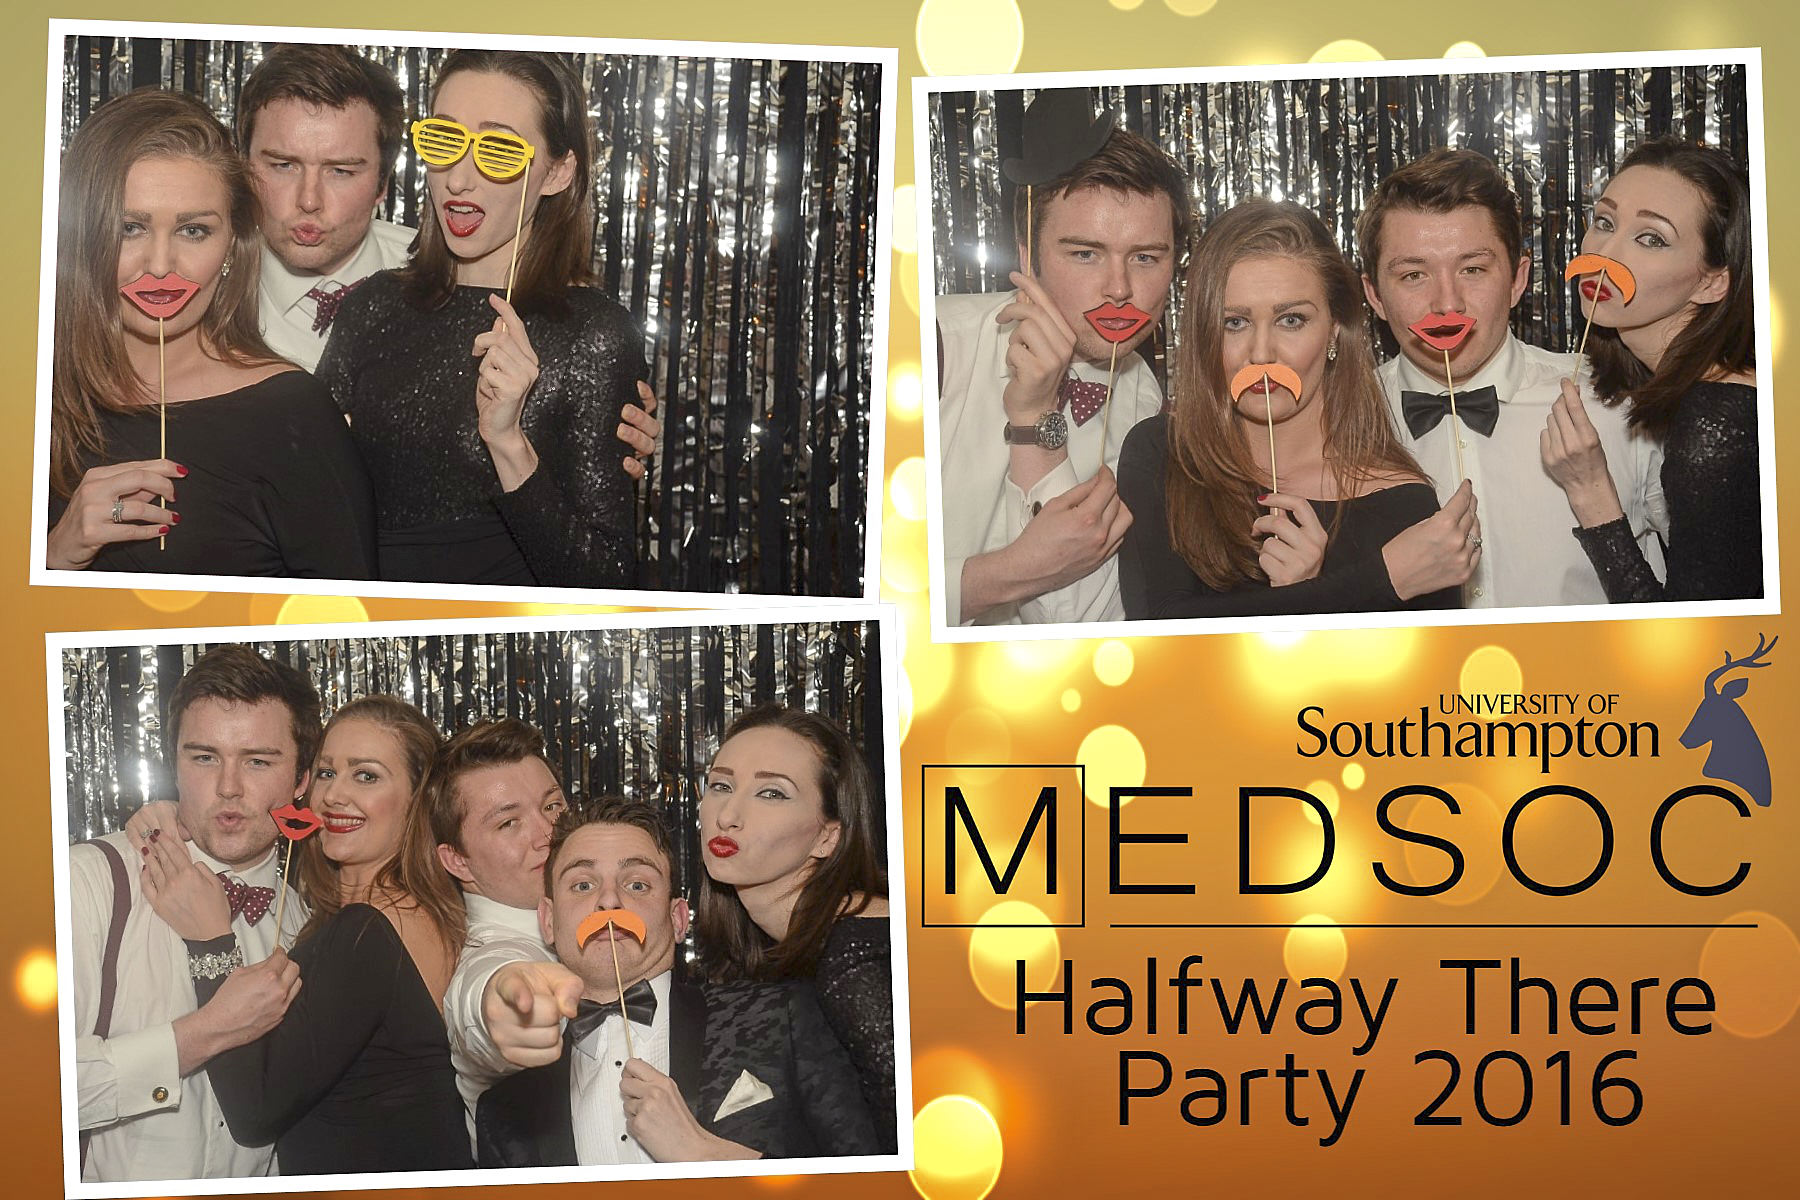 MedSoc Halfway There Party 2016 DS225121.jpg